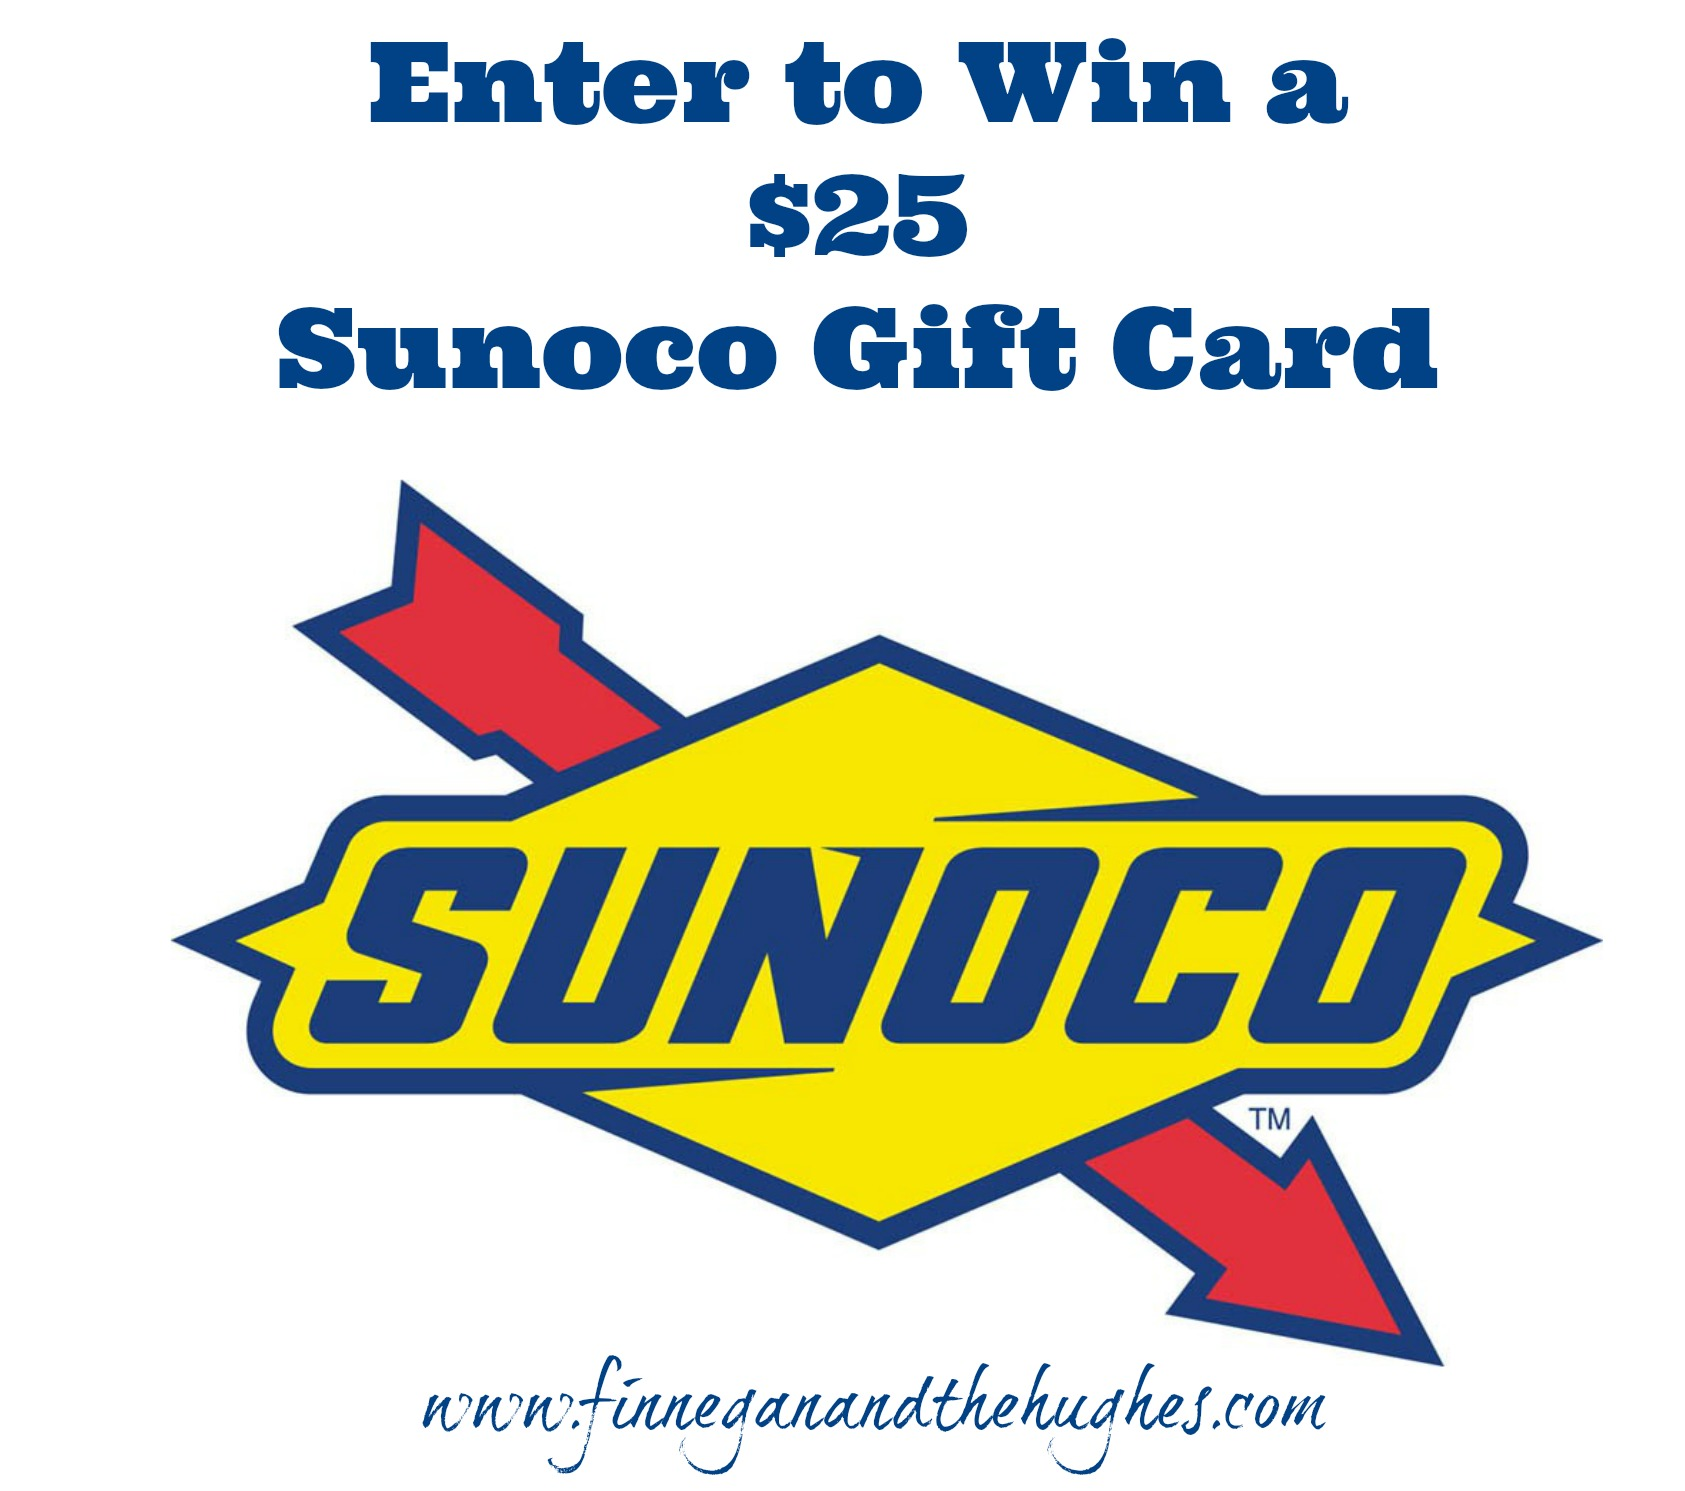 Sunoco Gift Card Giveaway